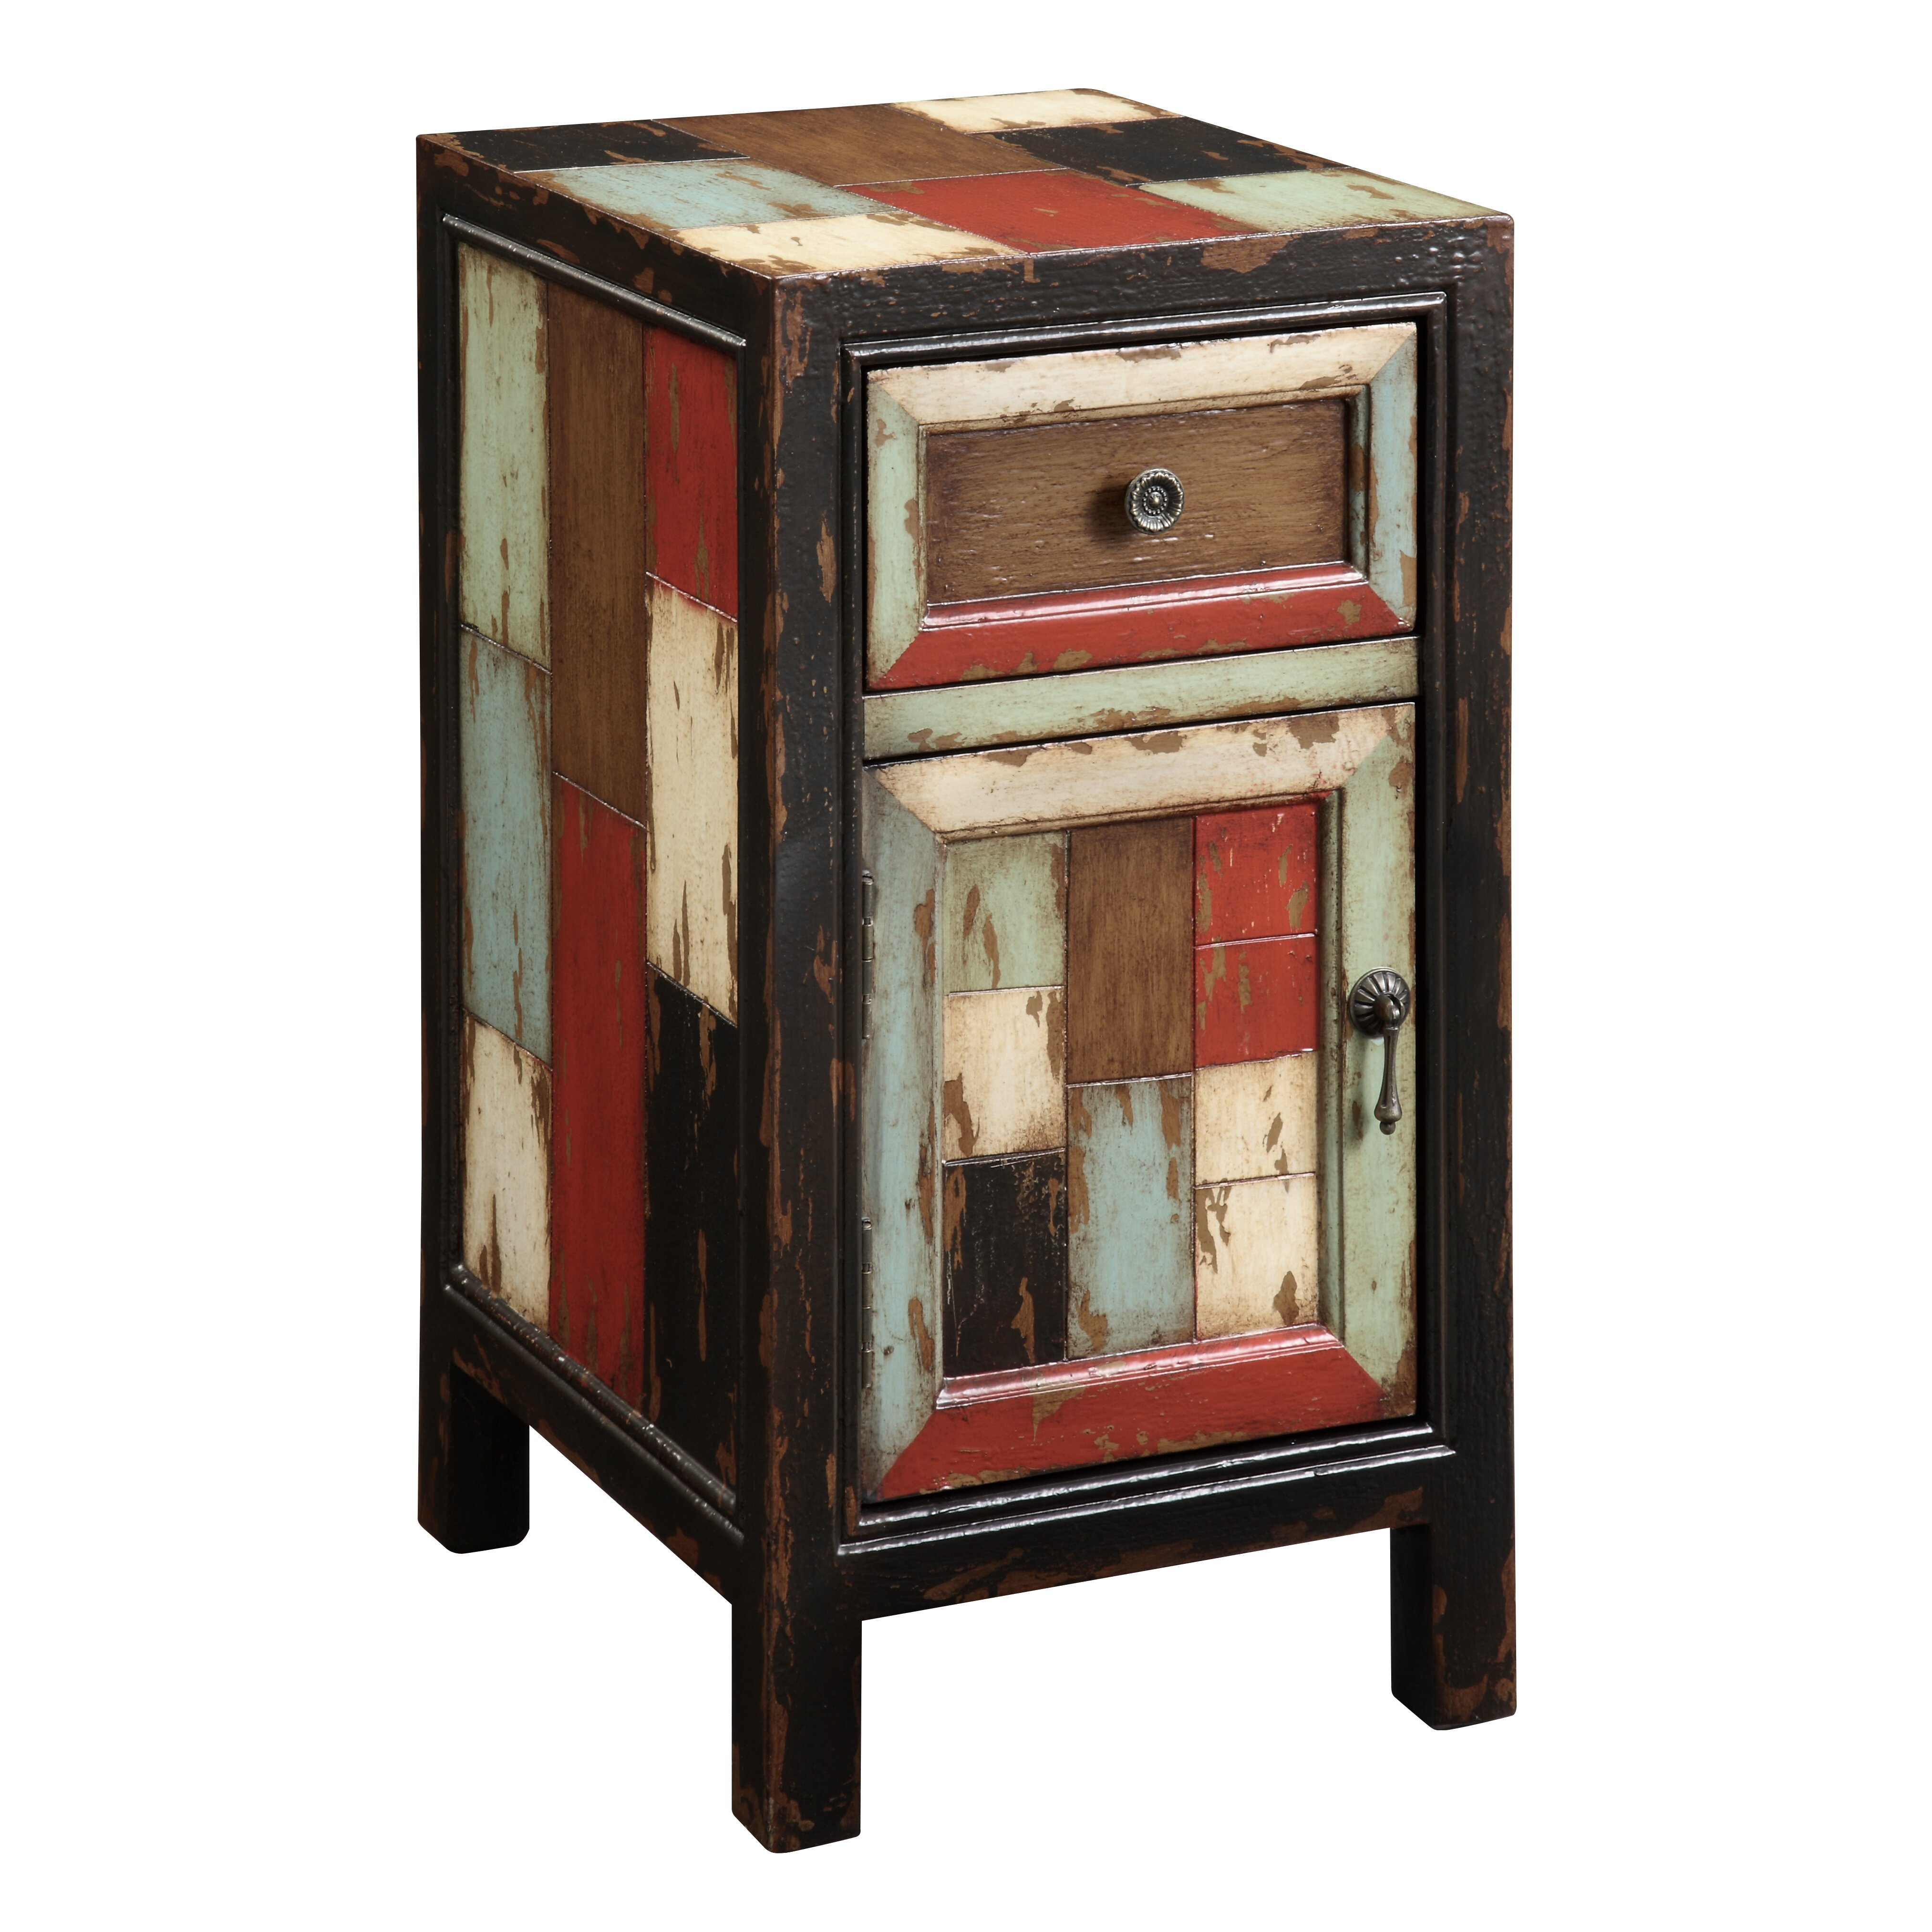 Coast to coast imports rustic 1 drawer end table reviews for 1 door cabinet